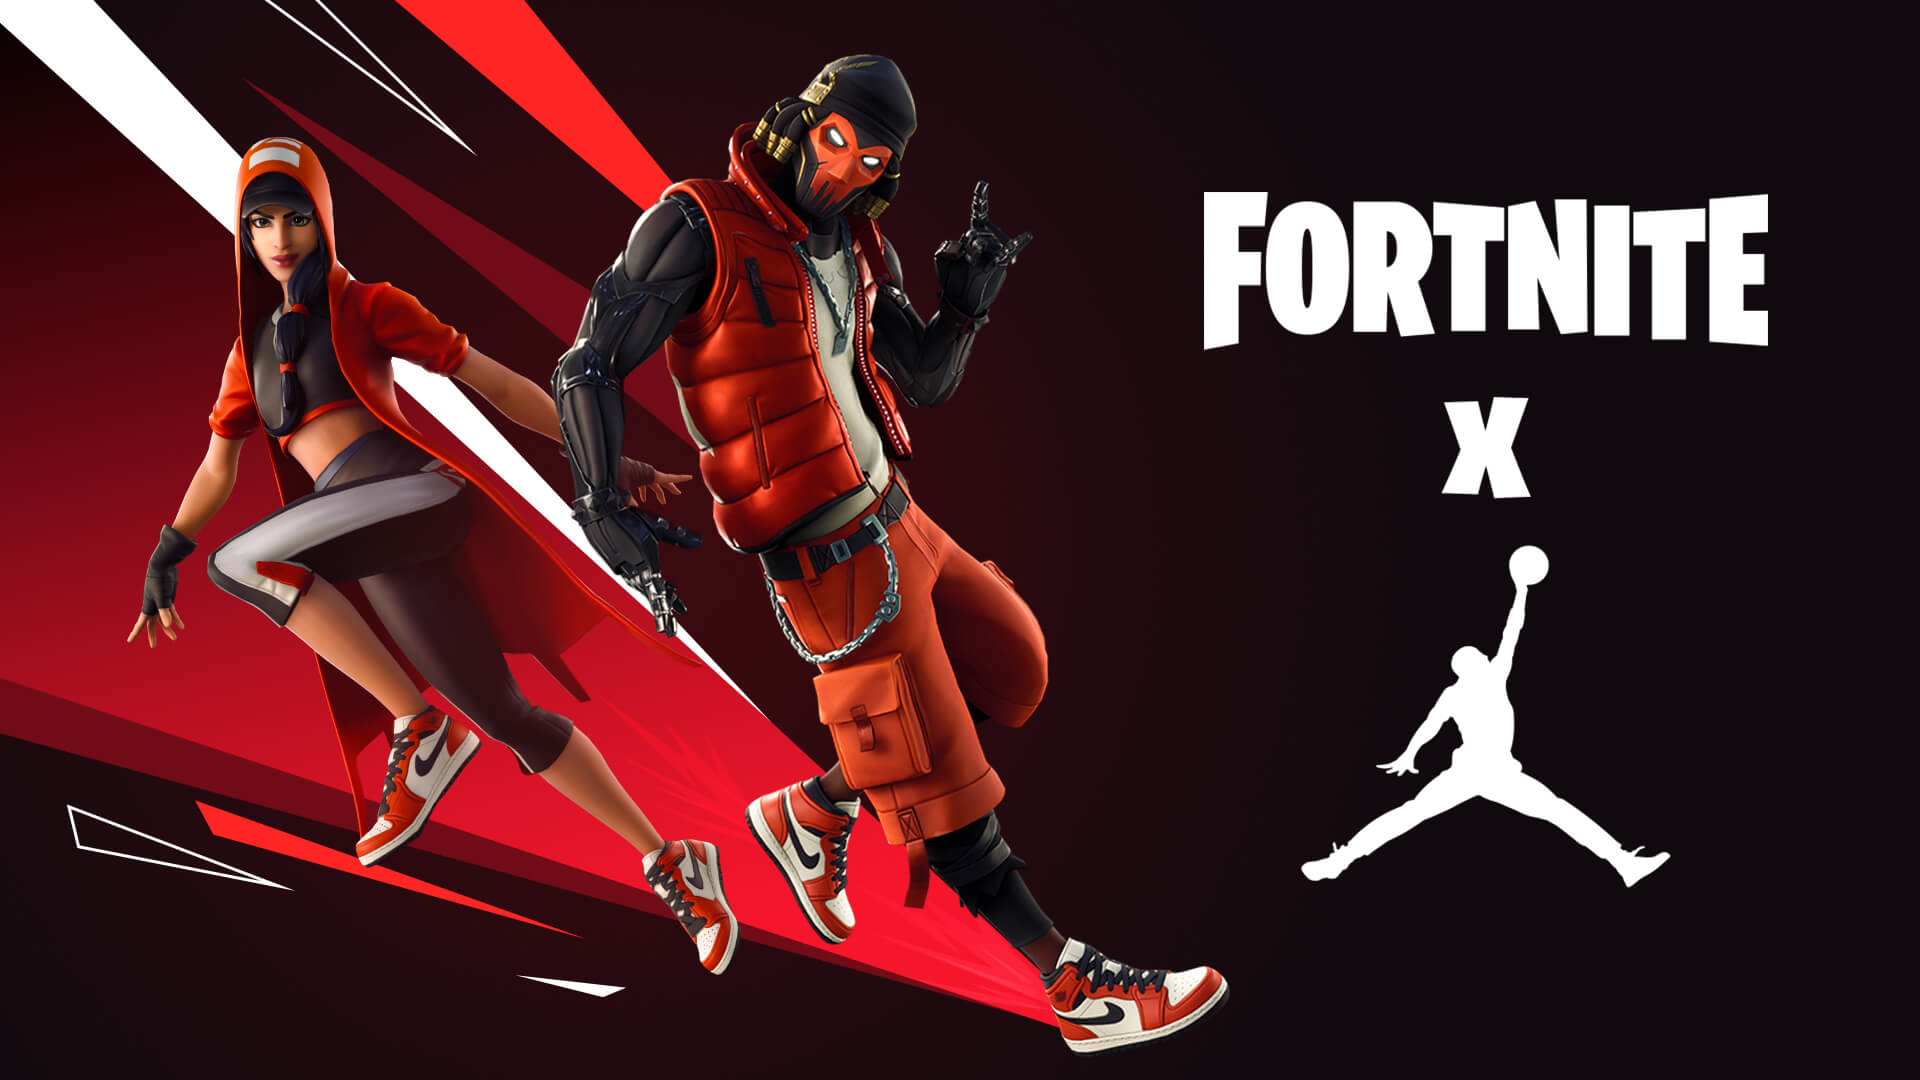 Fortnite Joins Forces With Michael Jordan In The Battle